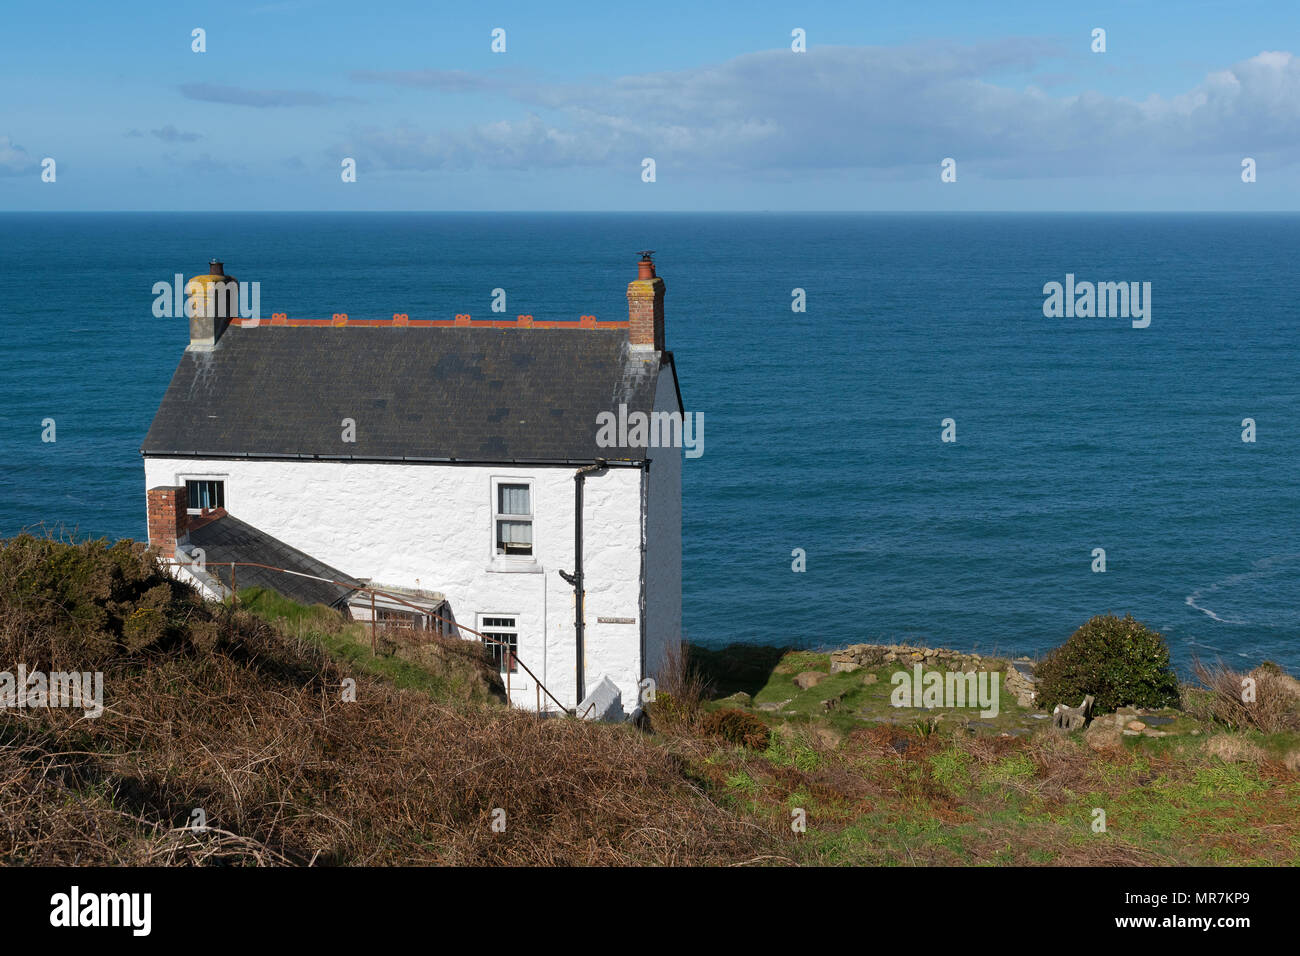 holiday cottage overlooking the sea at cape cornwall, cornwall, england, britain, uk, - Stock Image